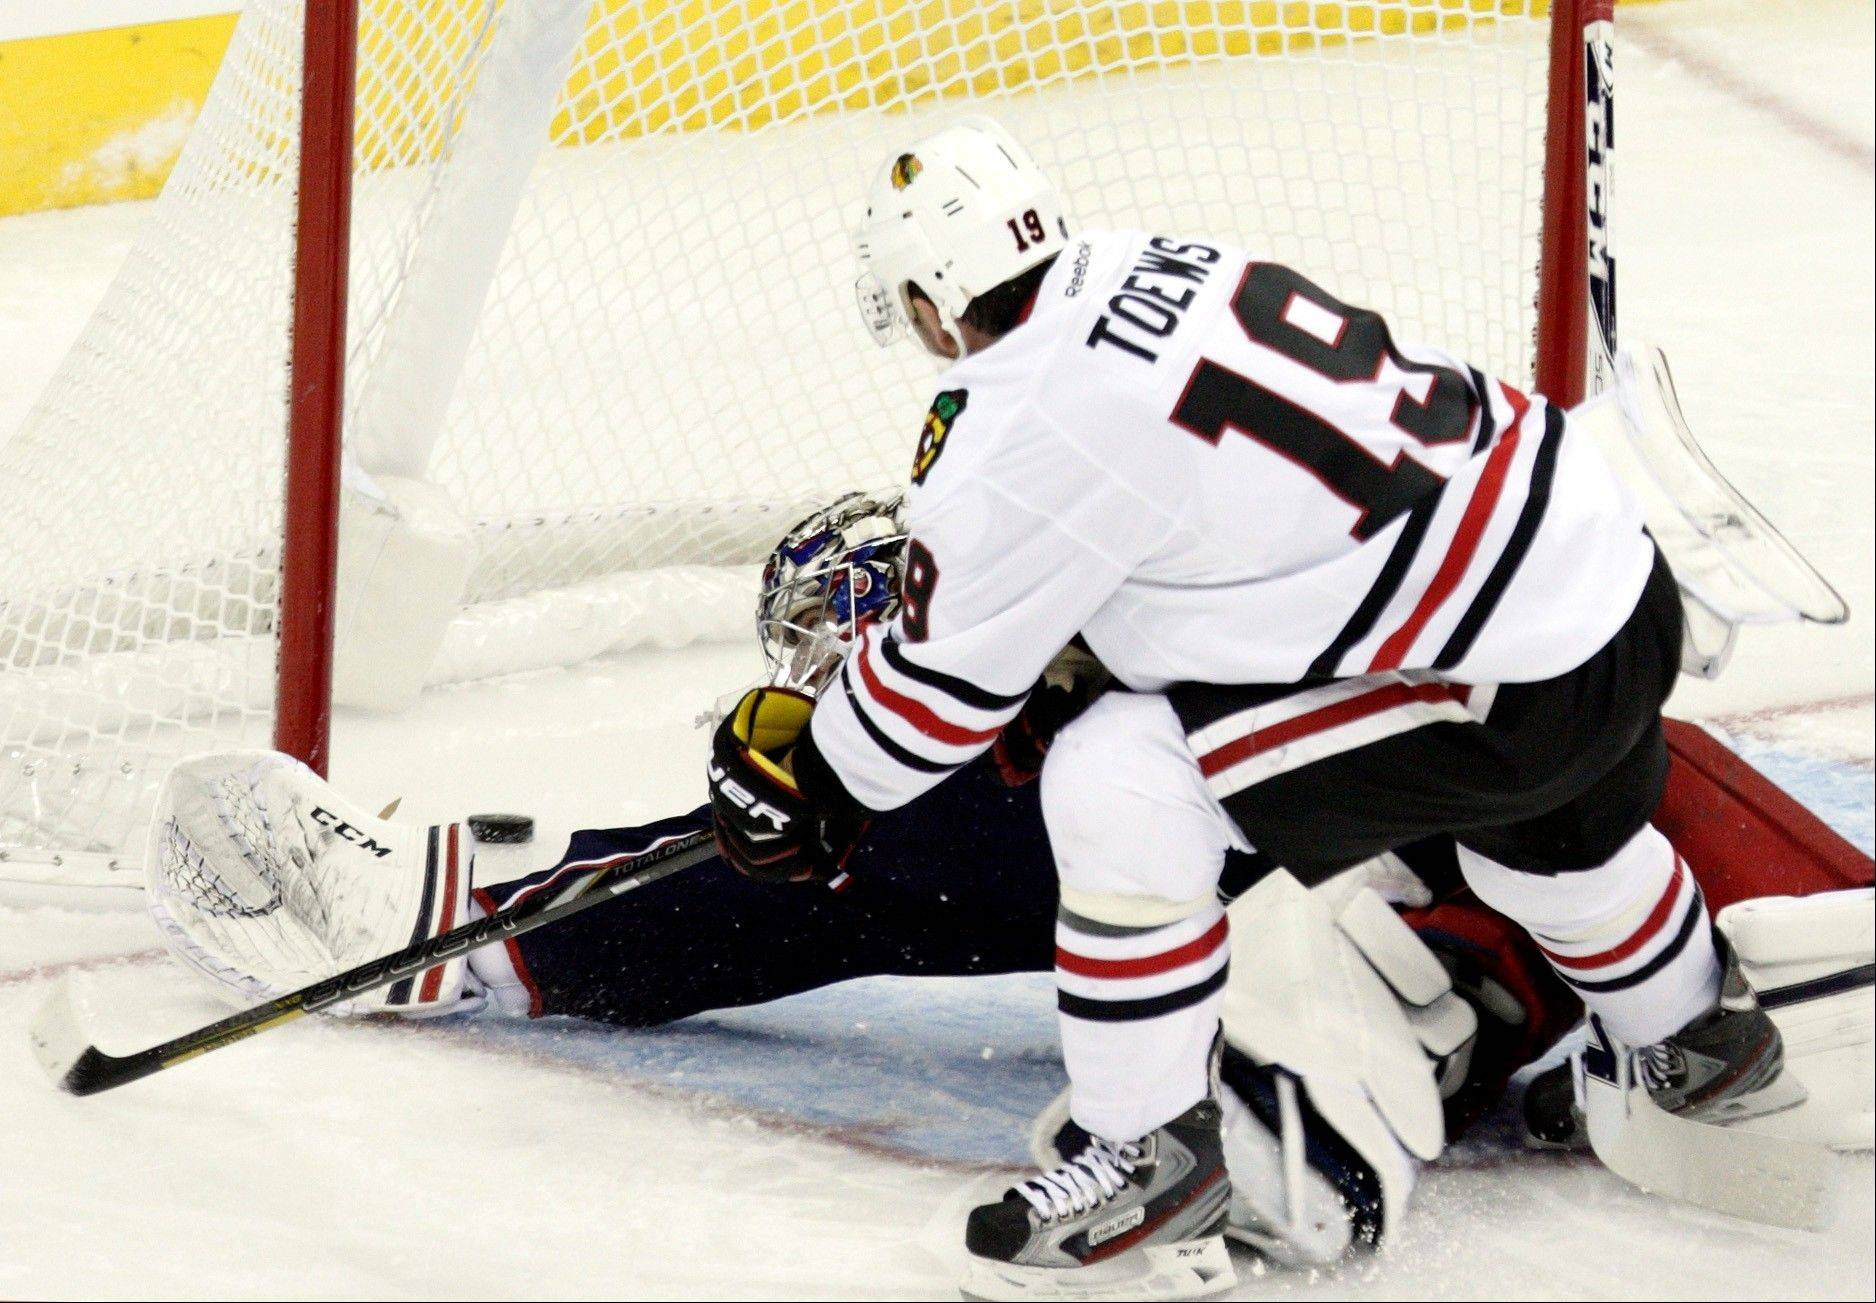 Chicago Blackhawks center Jonathan Toews, right, slips the puck past against Columbus Blue Jackets' Steve Mason in the third period of an NHL hockey game in Columbus, Ohio, Saturday, Jan. 26, 2013. Chicago won 3-2.